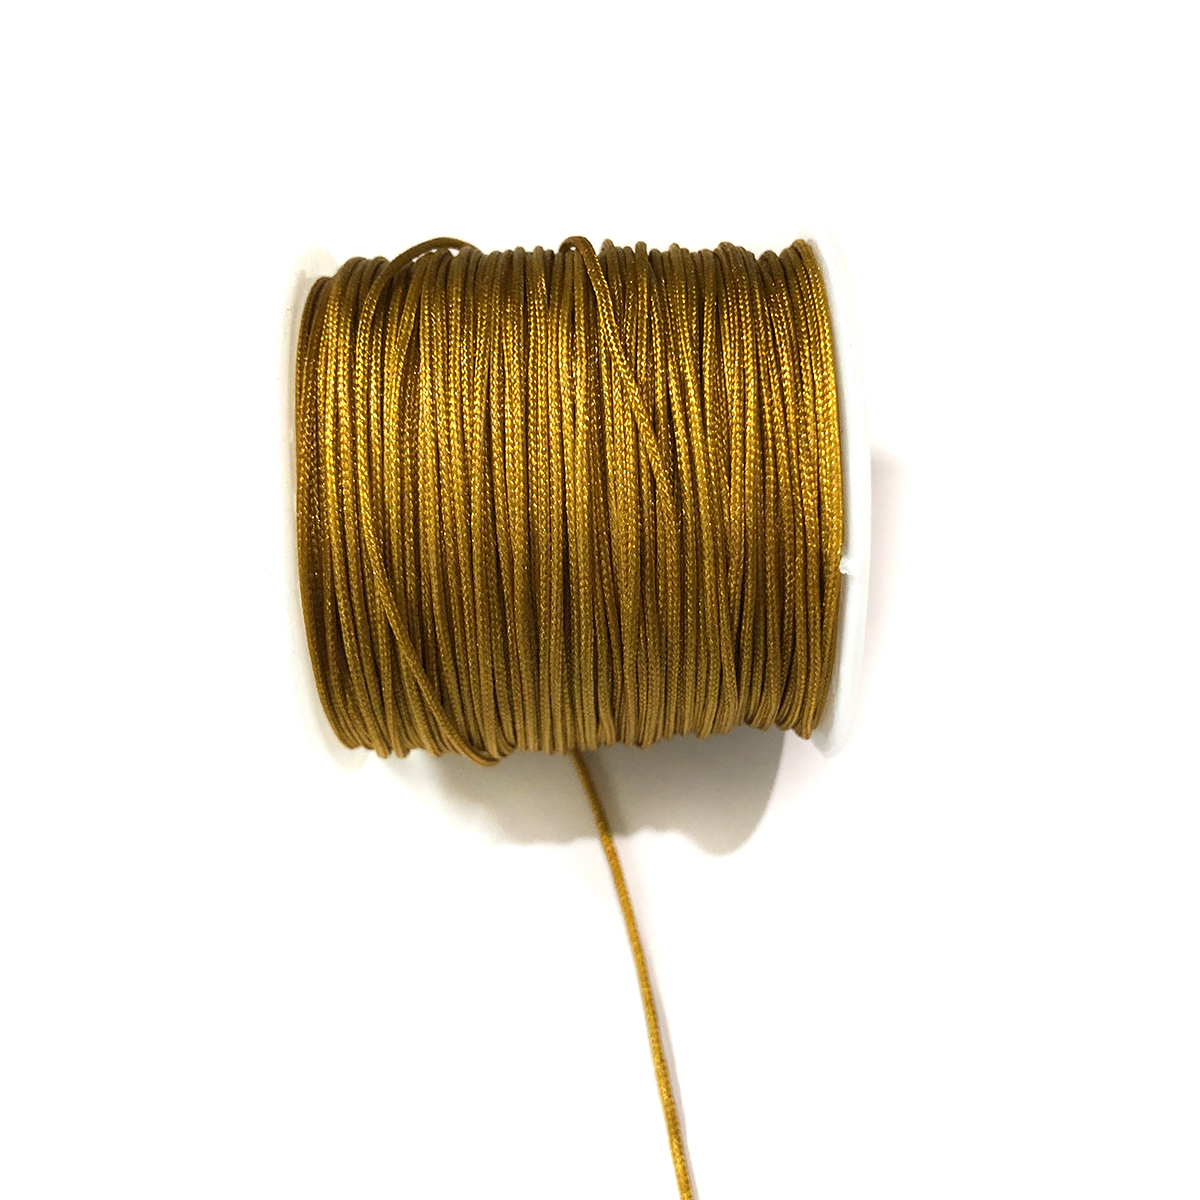 #0 Bugtail, 1mm Polyester cord, 40 yards, Antique Gold